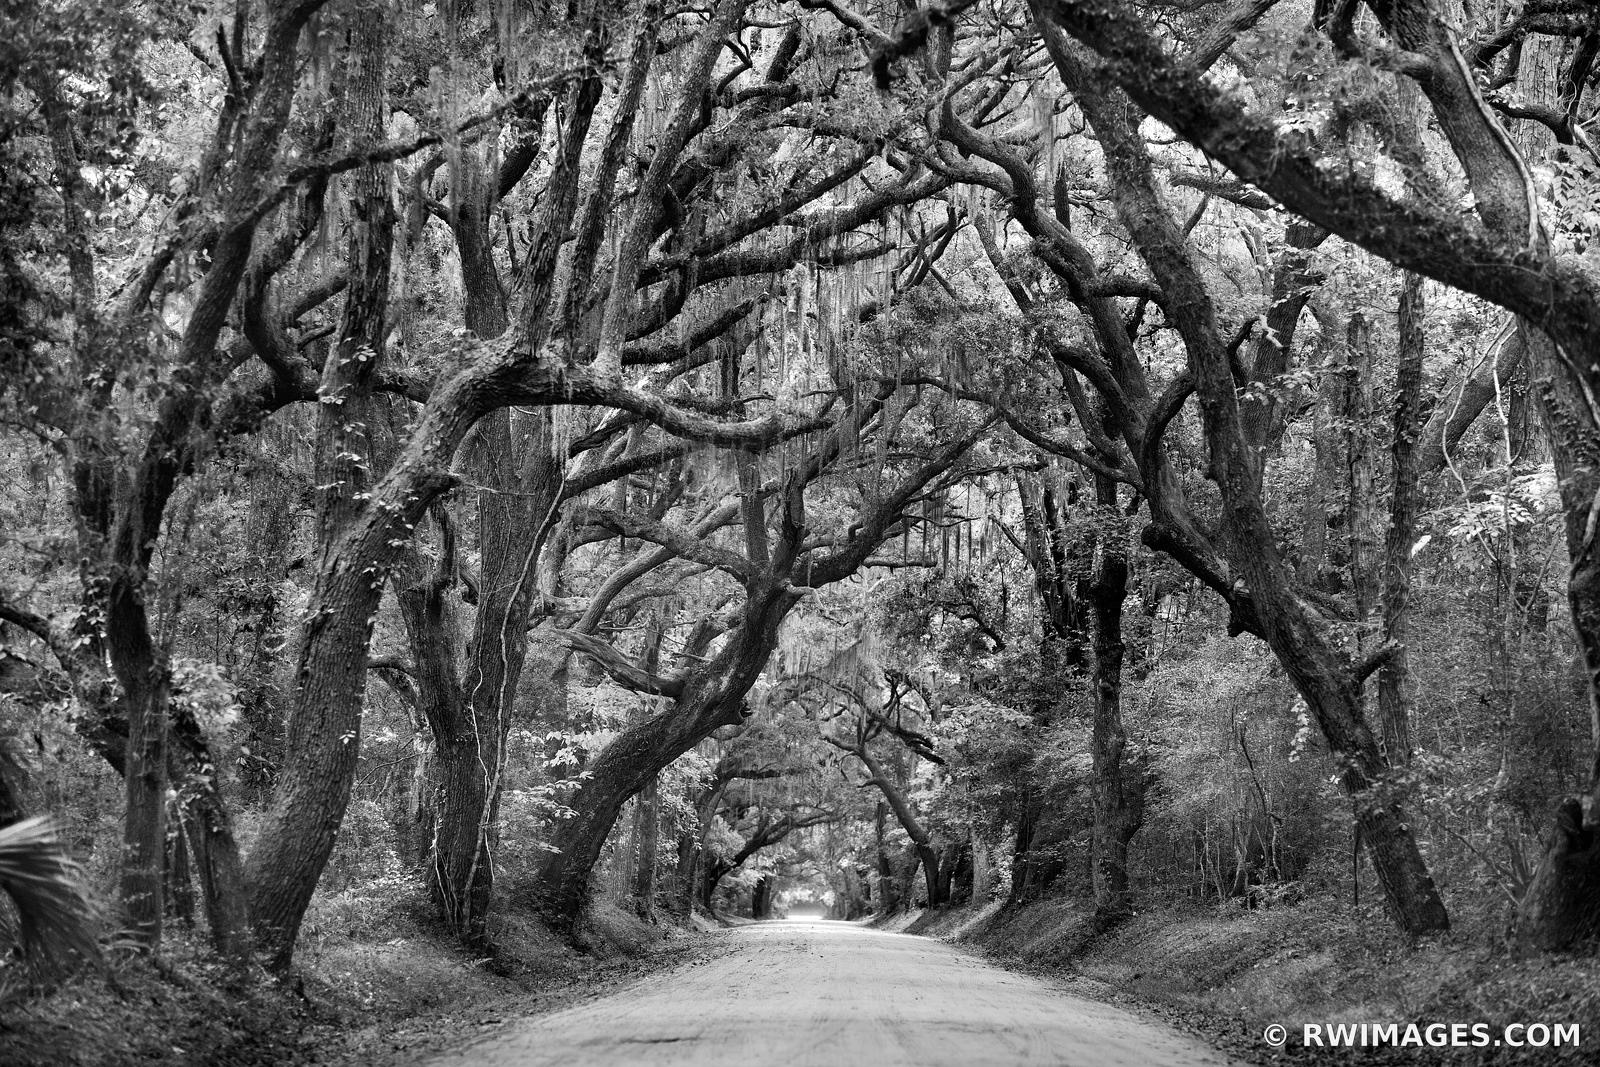 BOTANY BAY ROAD EDISTO ISLAND SOUTH CAROLINA BLACK AND WHITE